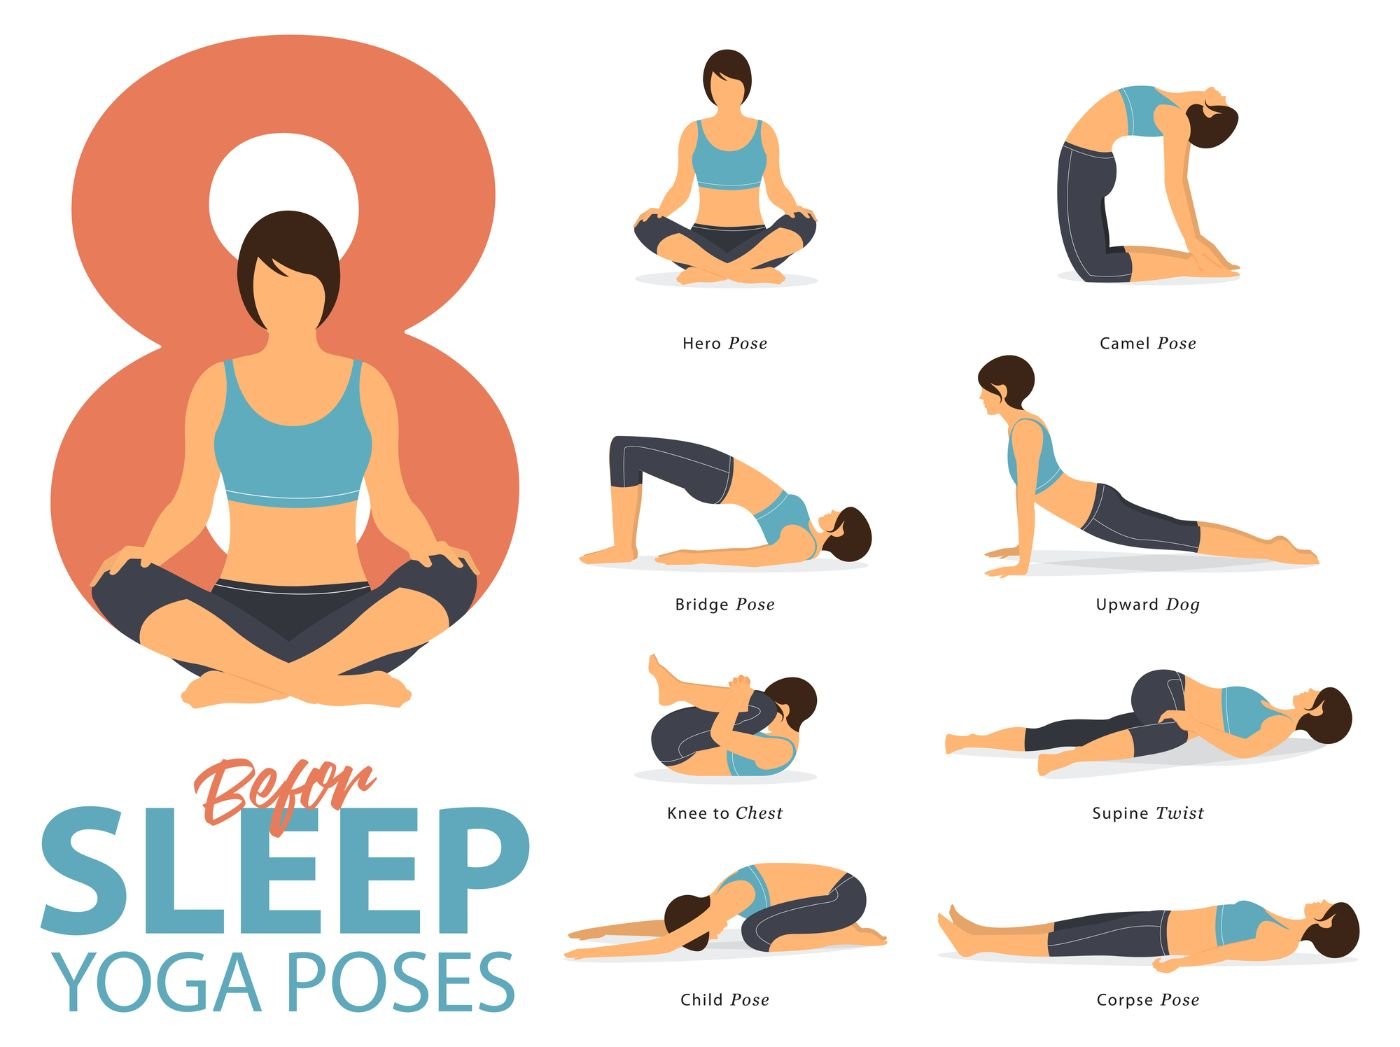 Yoga poses before sleep